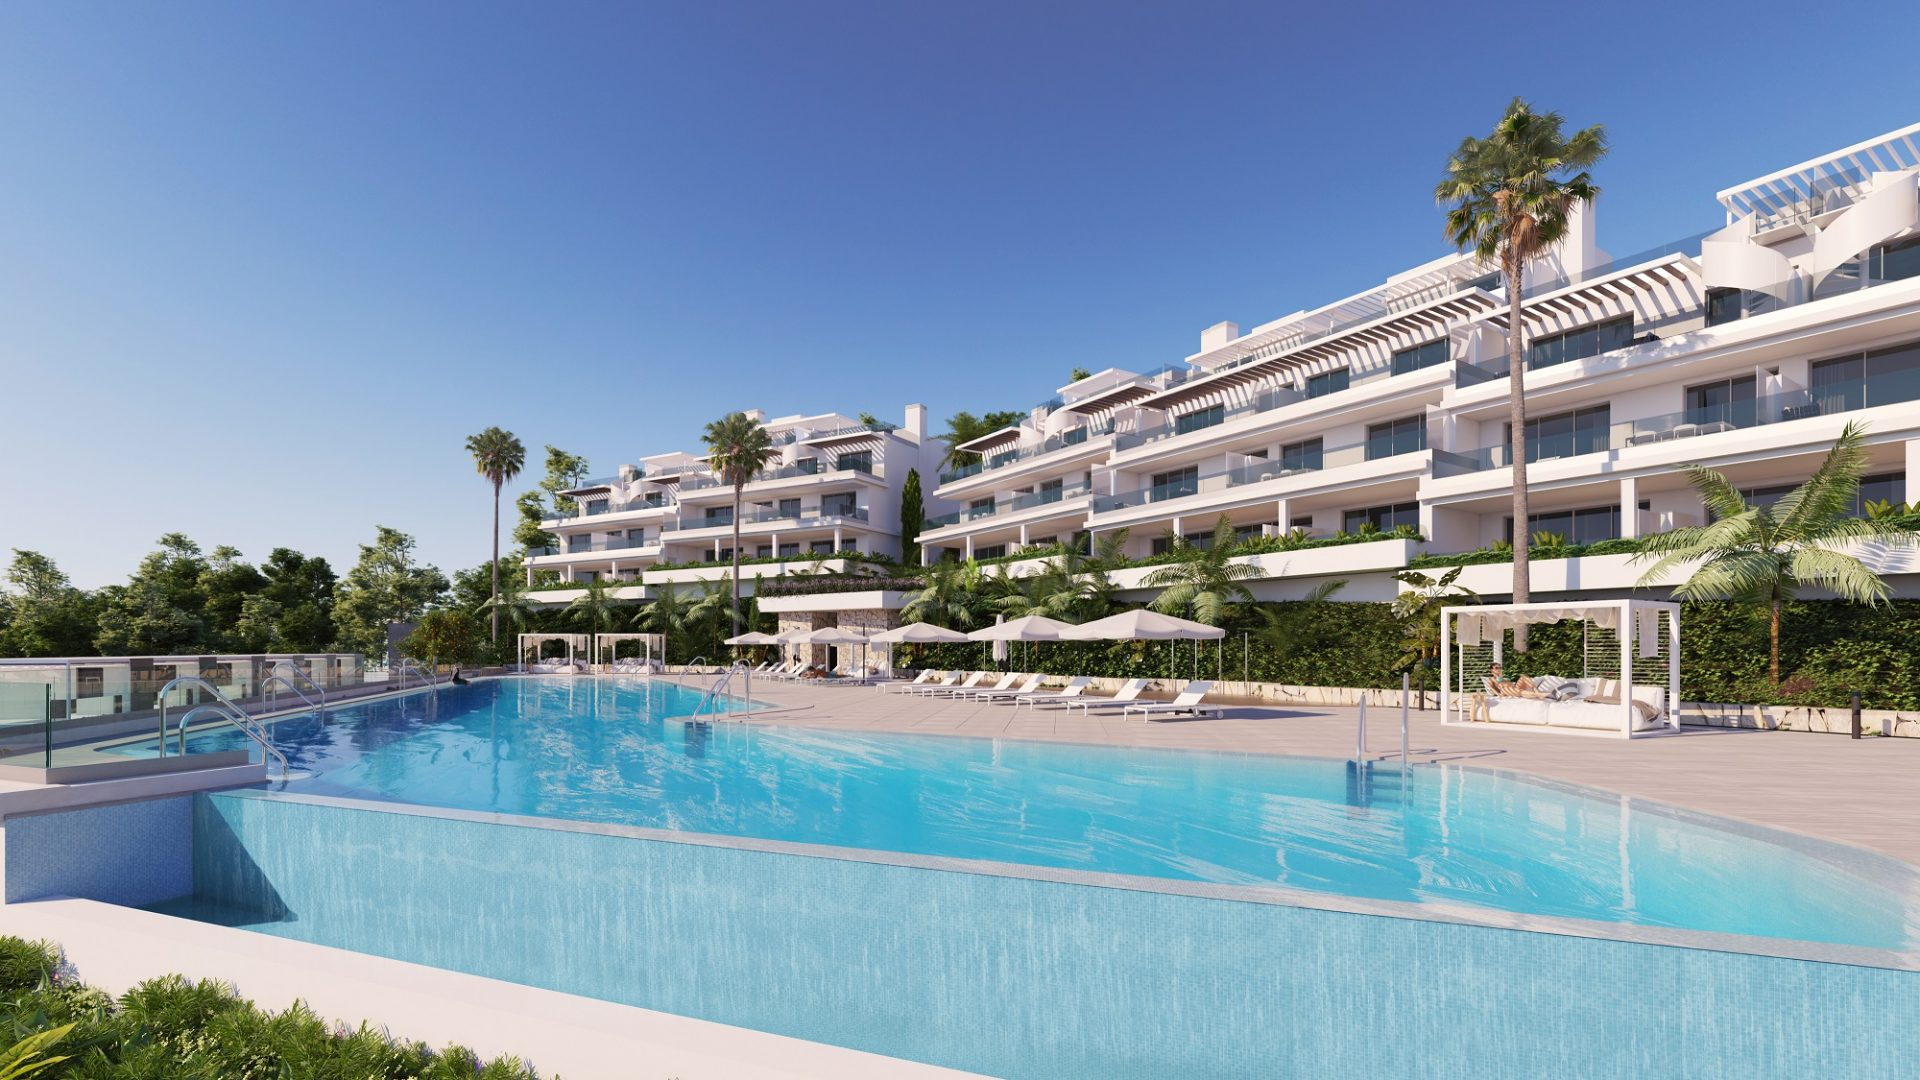 2 & 3 Bedrooms with stunning seaviews in the New Golden Mile, Estepona